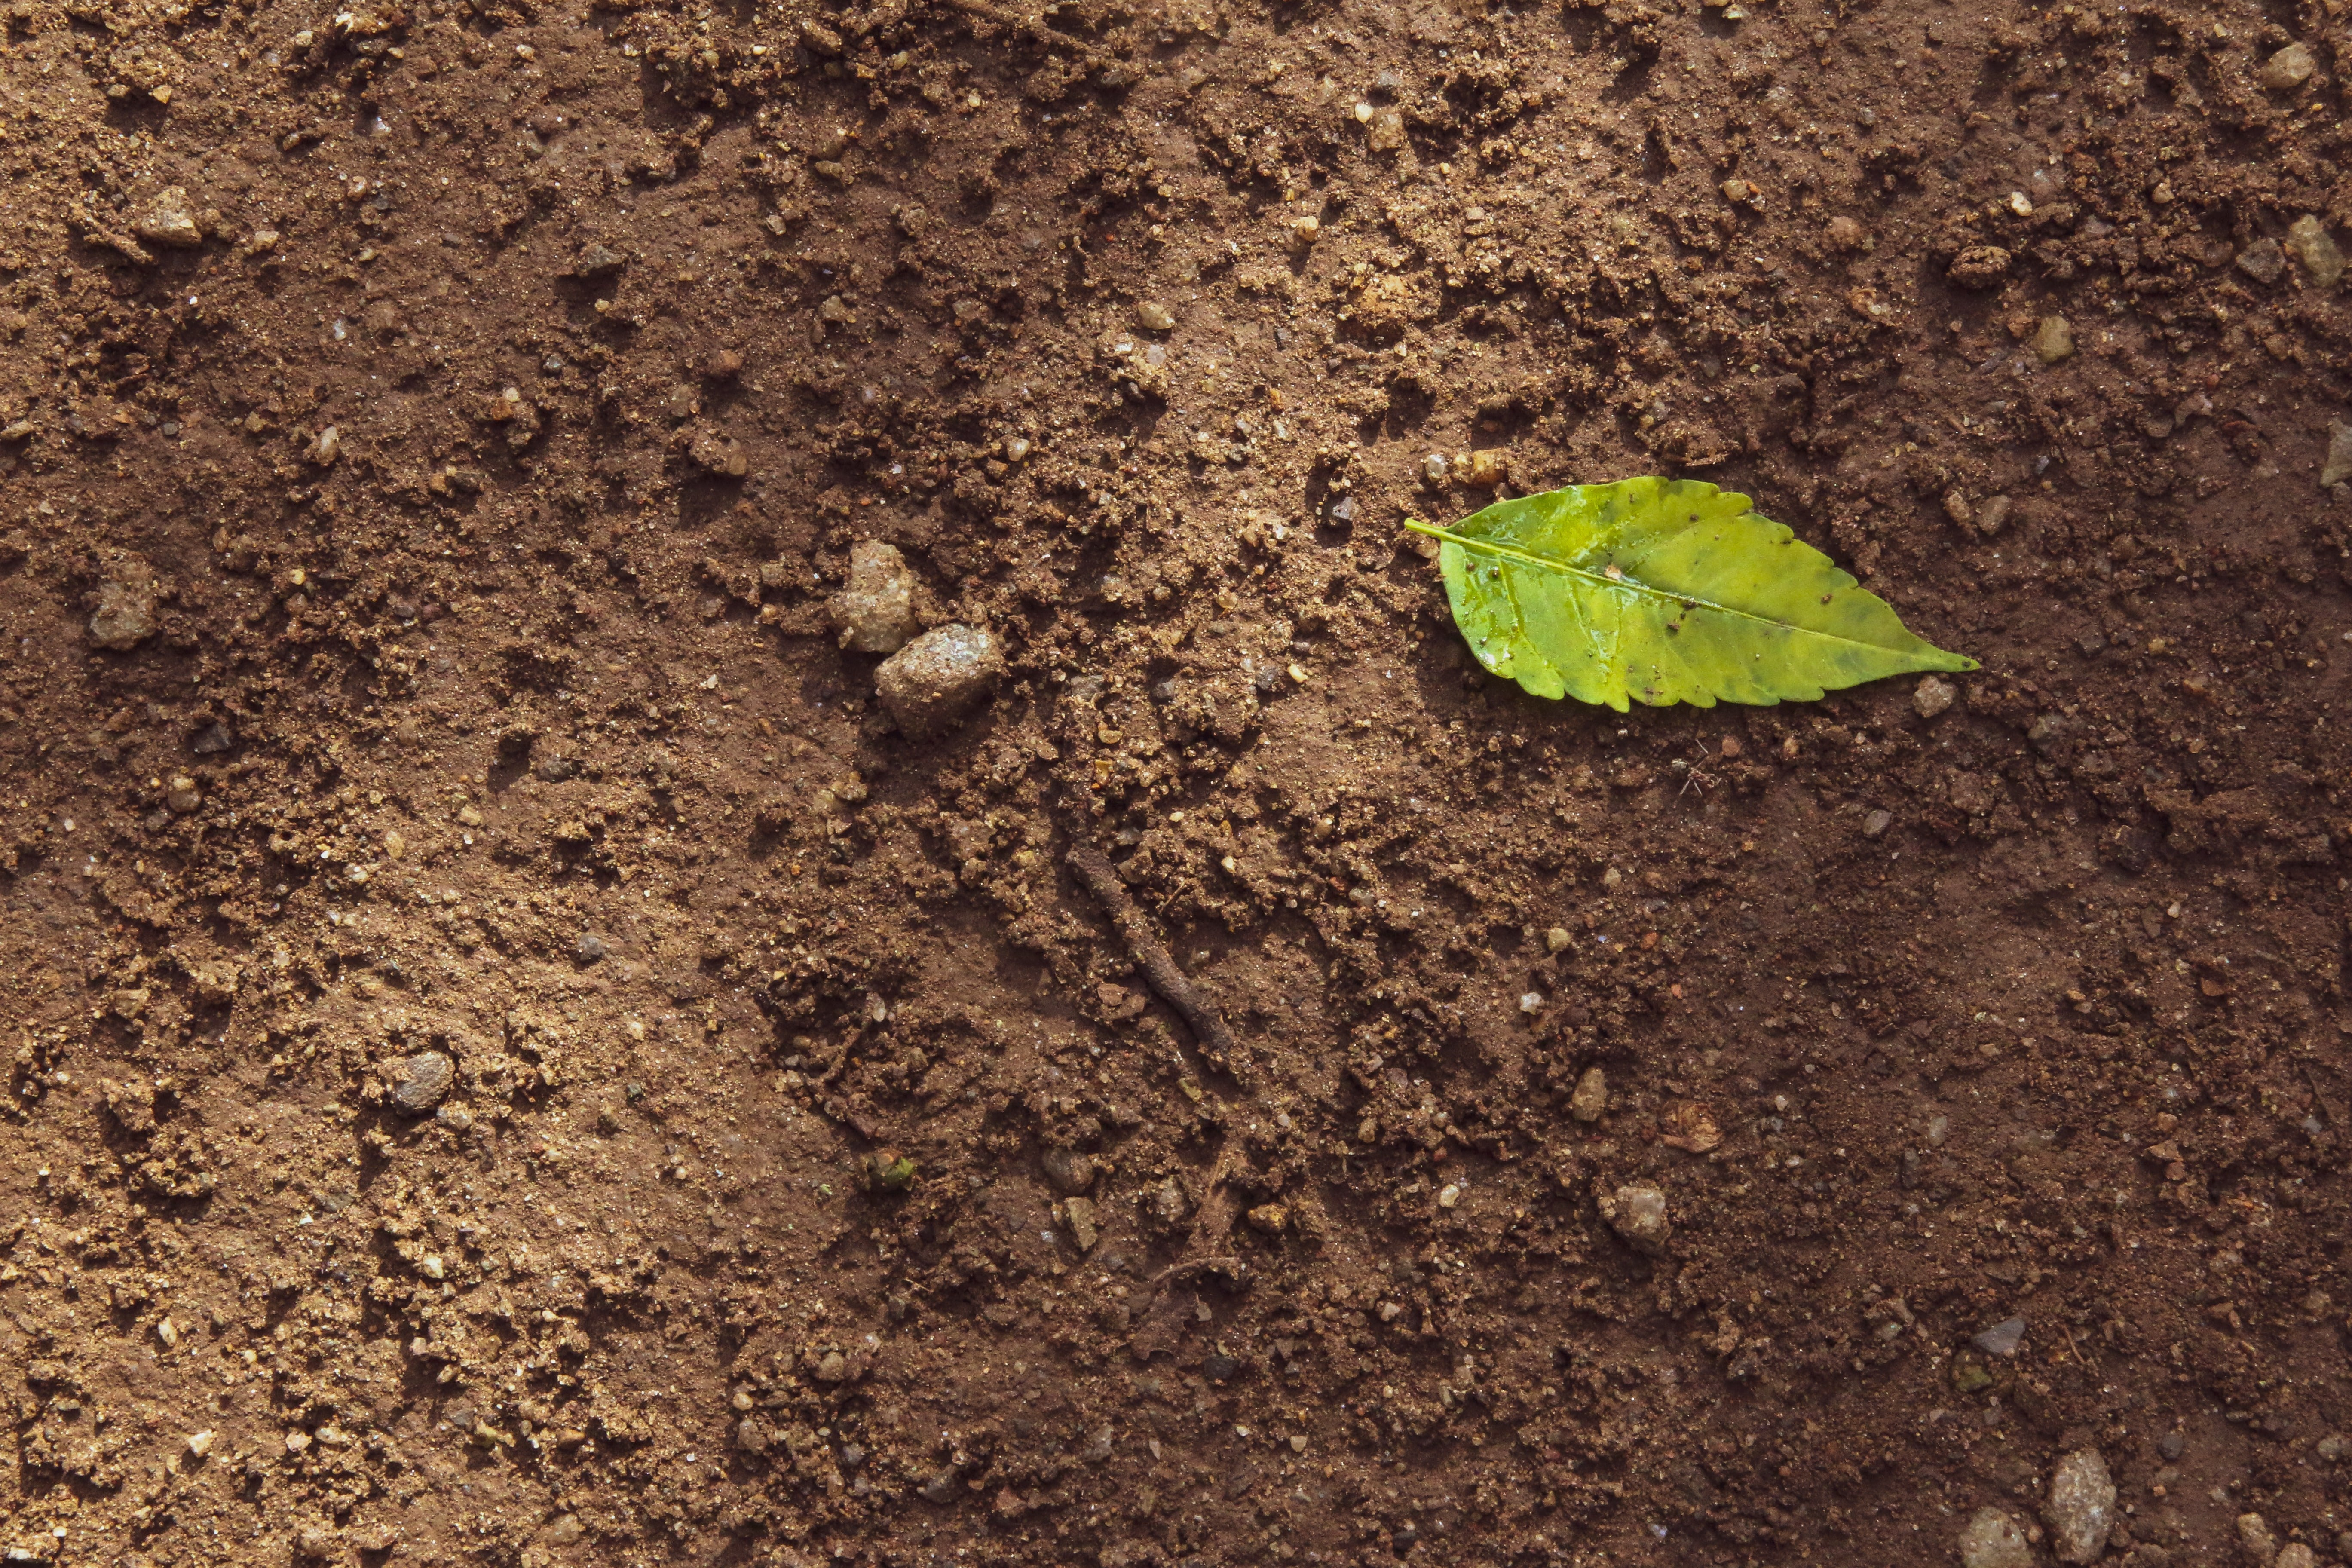 Digging Deeper: The Story of Soil